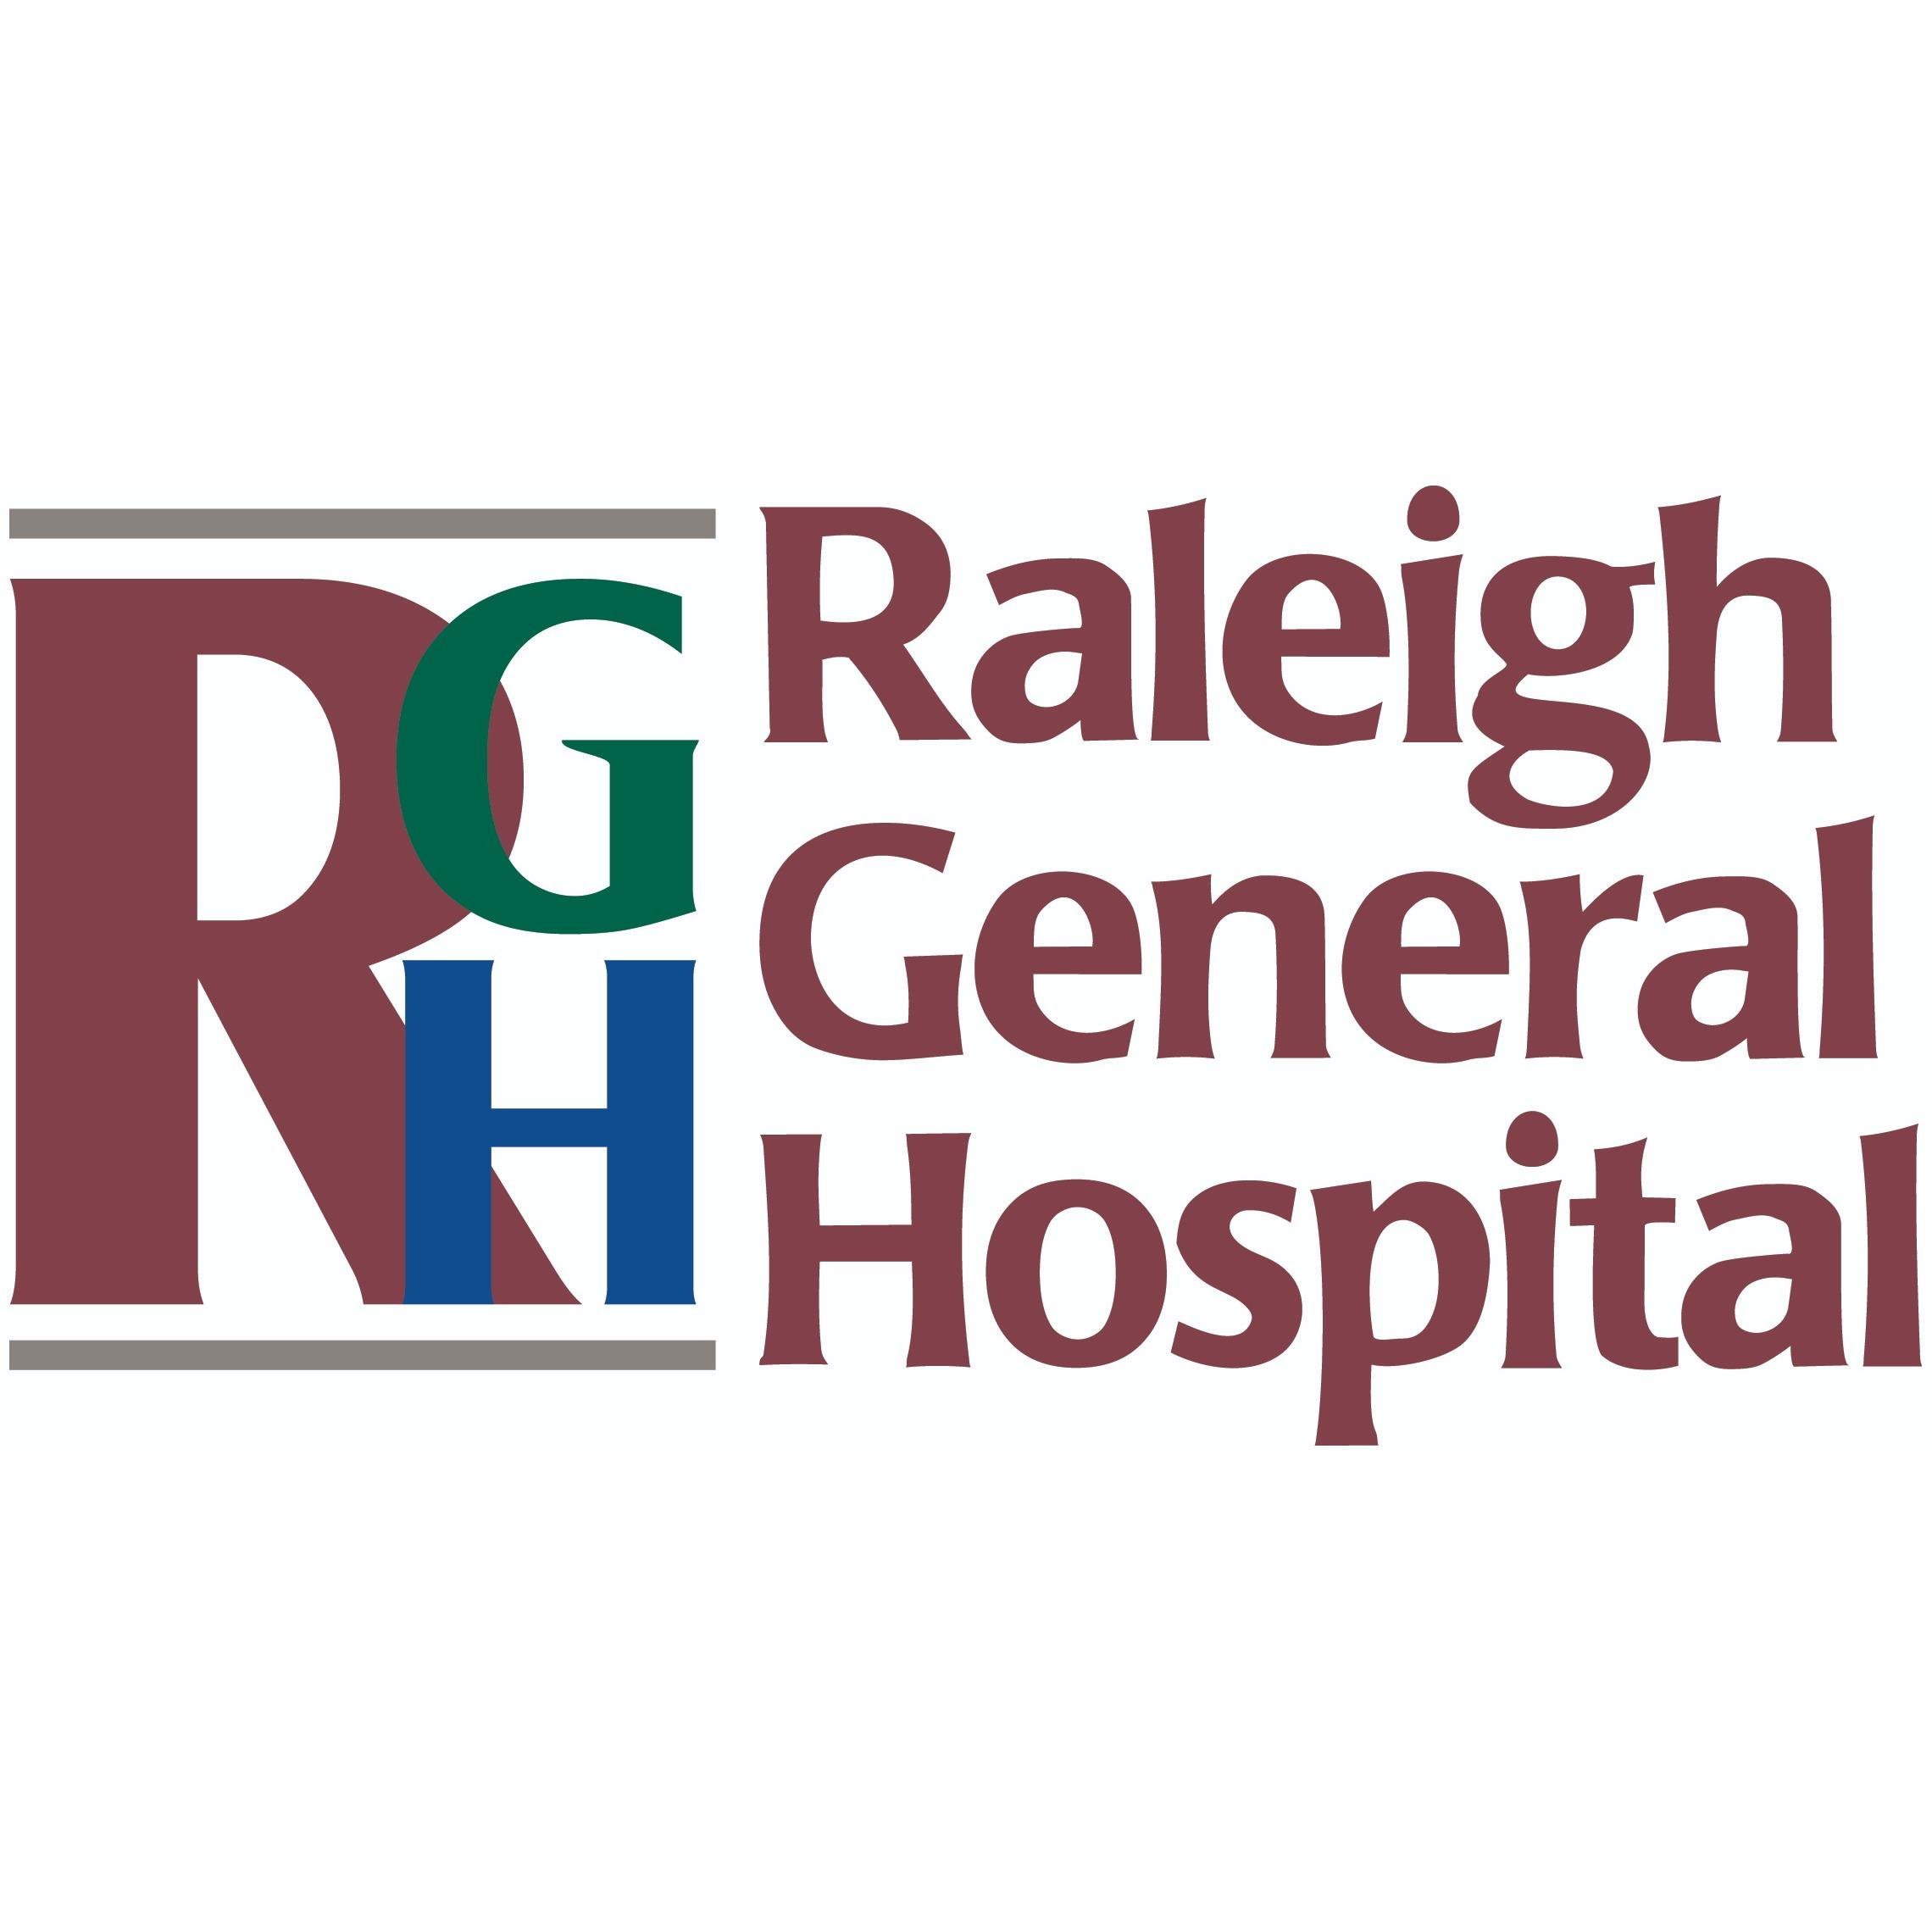 Raleigh General Hospital: Emergency Room